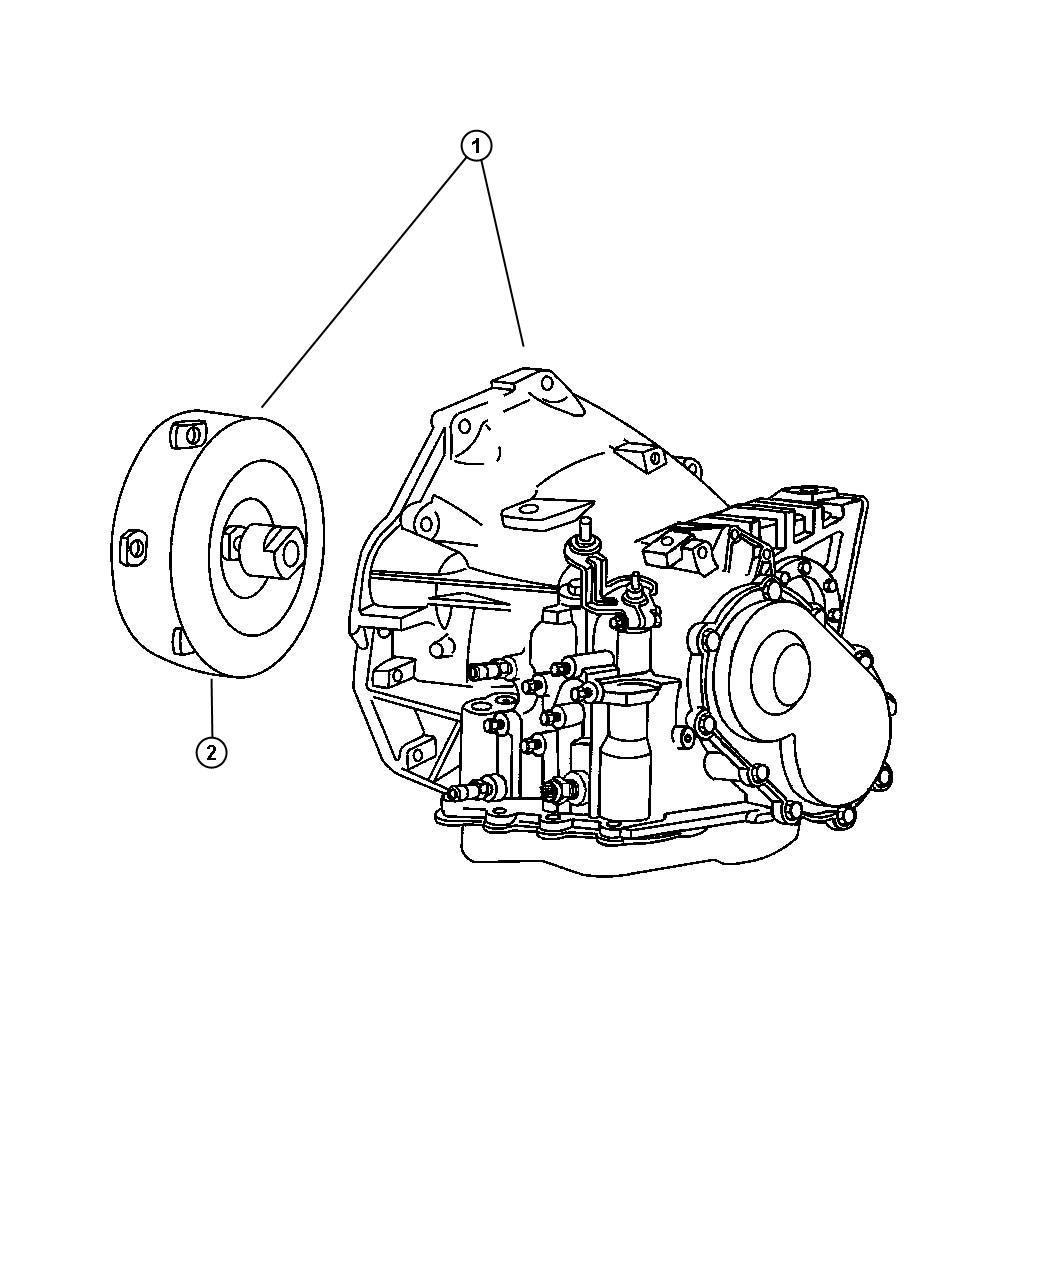 Chrysler Voyager Transaxle package. With torque converter